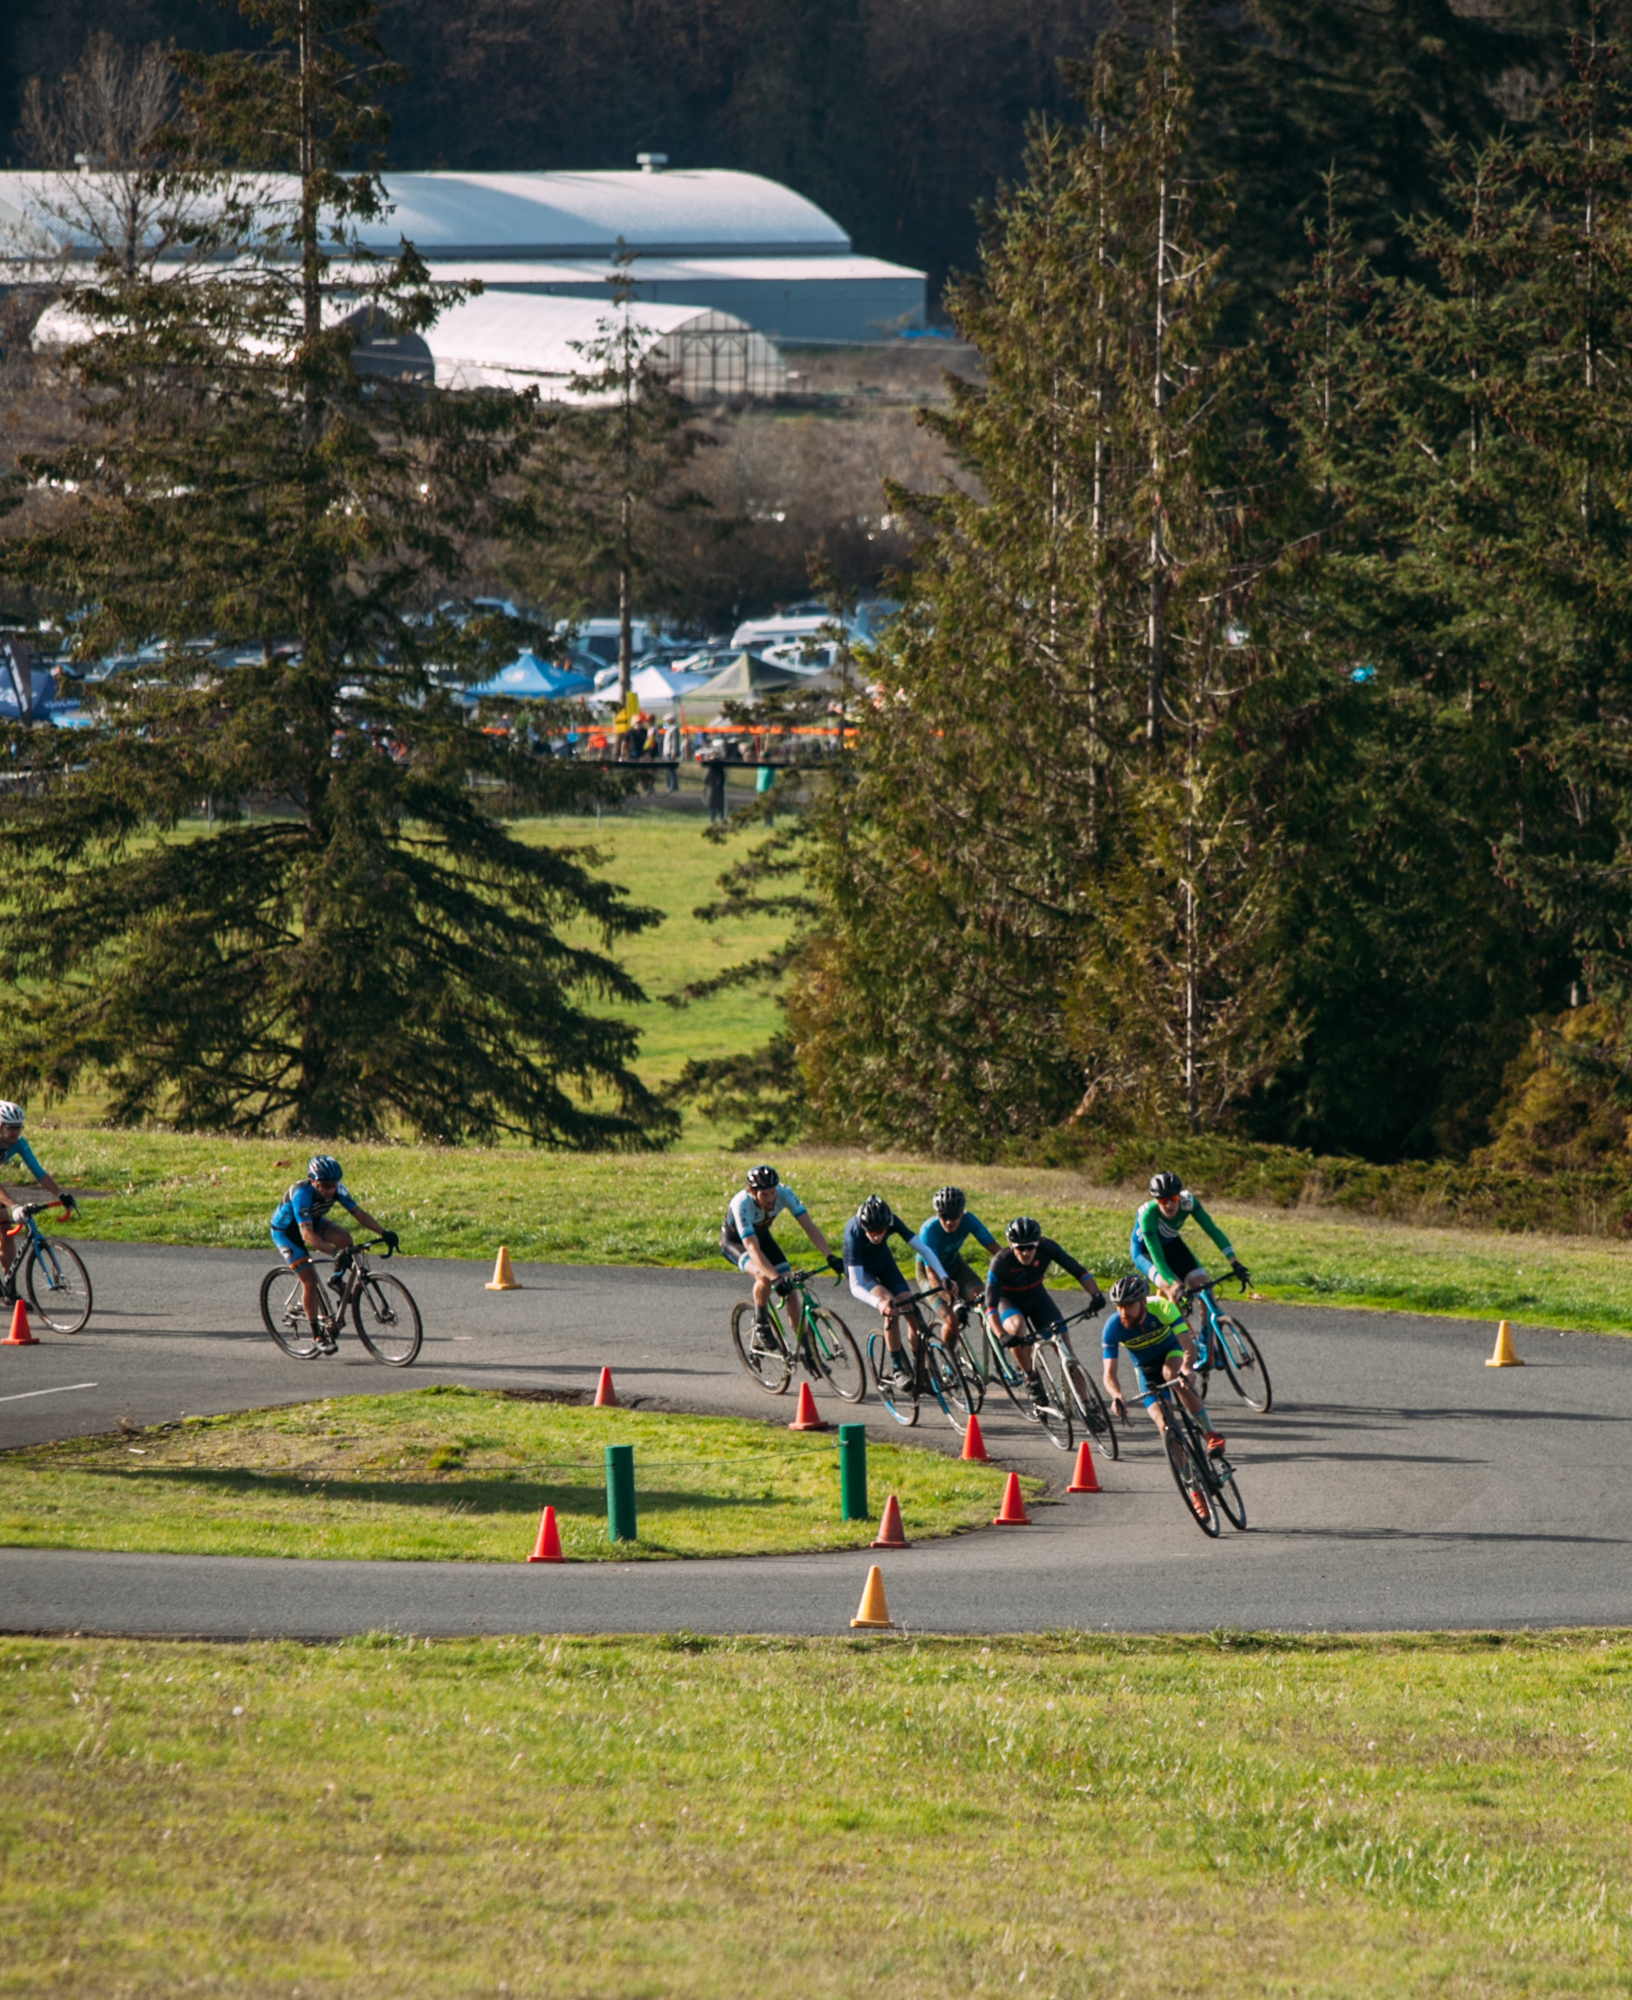 Cyclocross18_CCCX_RainierHS-14-mettlecycling.jpg